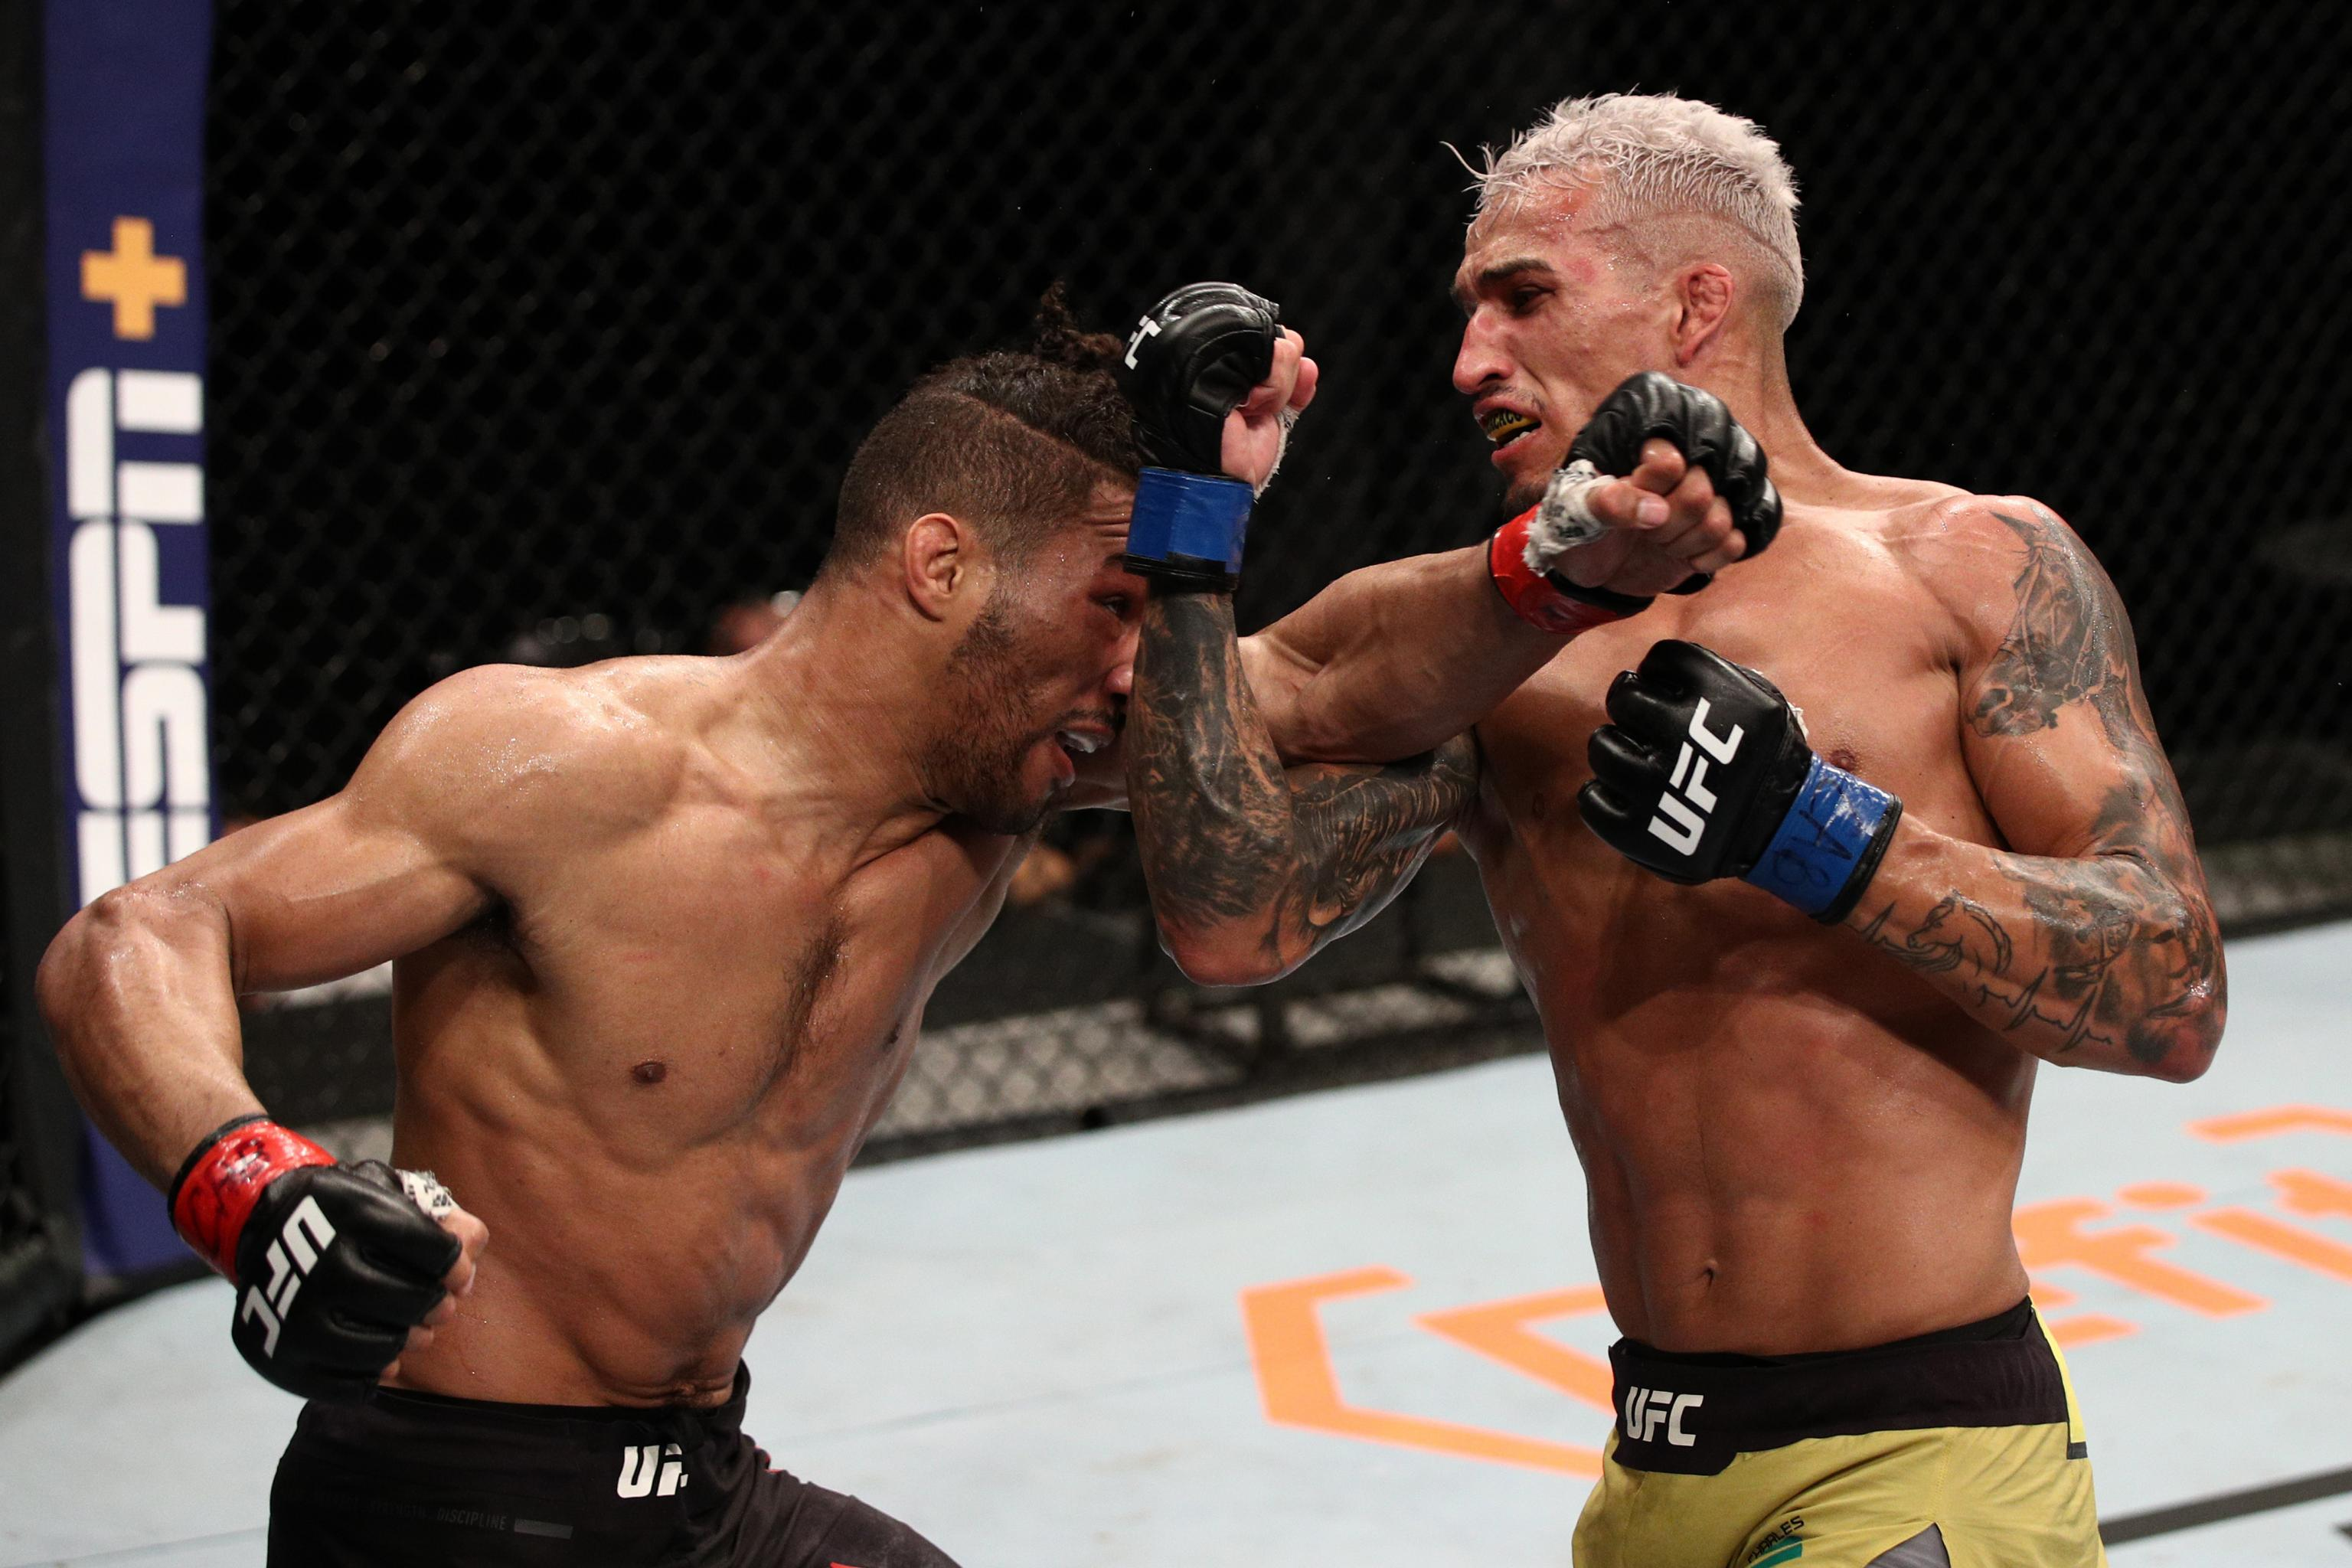 Ufc Fight Night 170 Results Charles Oliveira Upsets Kevin Lee Via Submission Bleacher Report Latest News Videos And Highlights